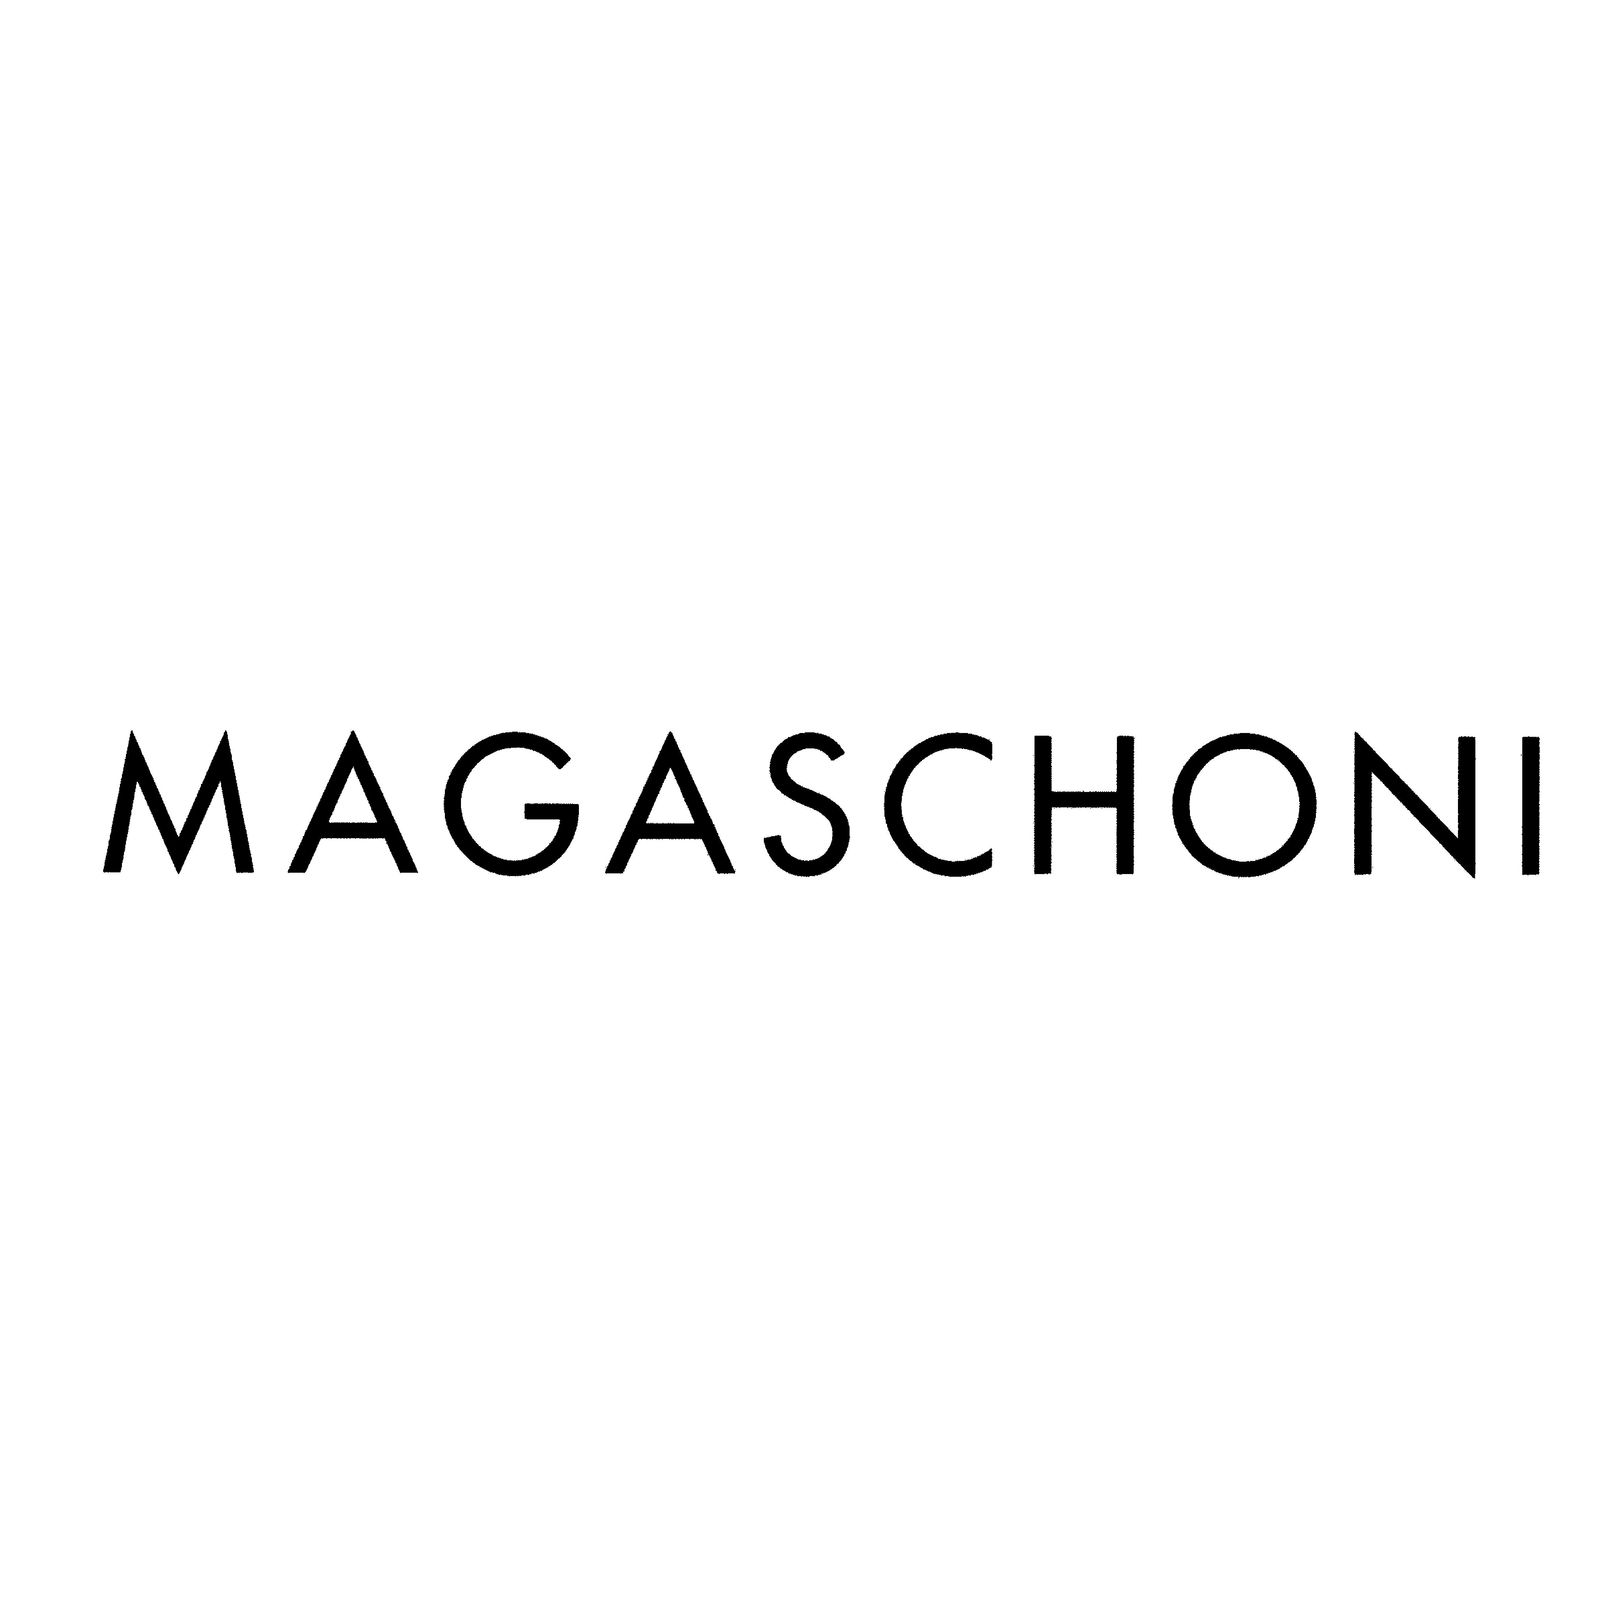 MAGASCHONI